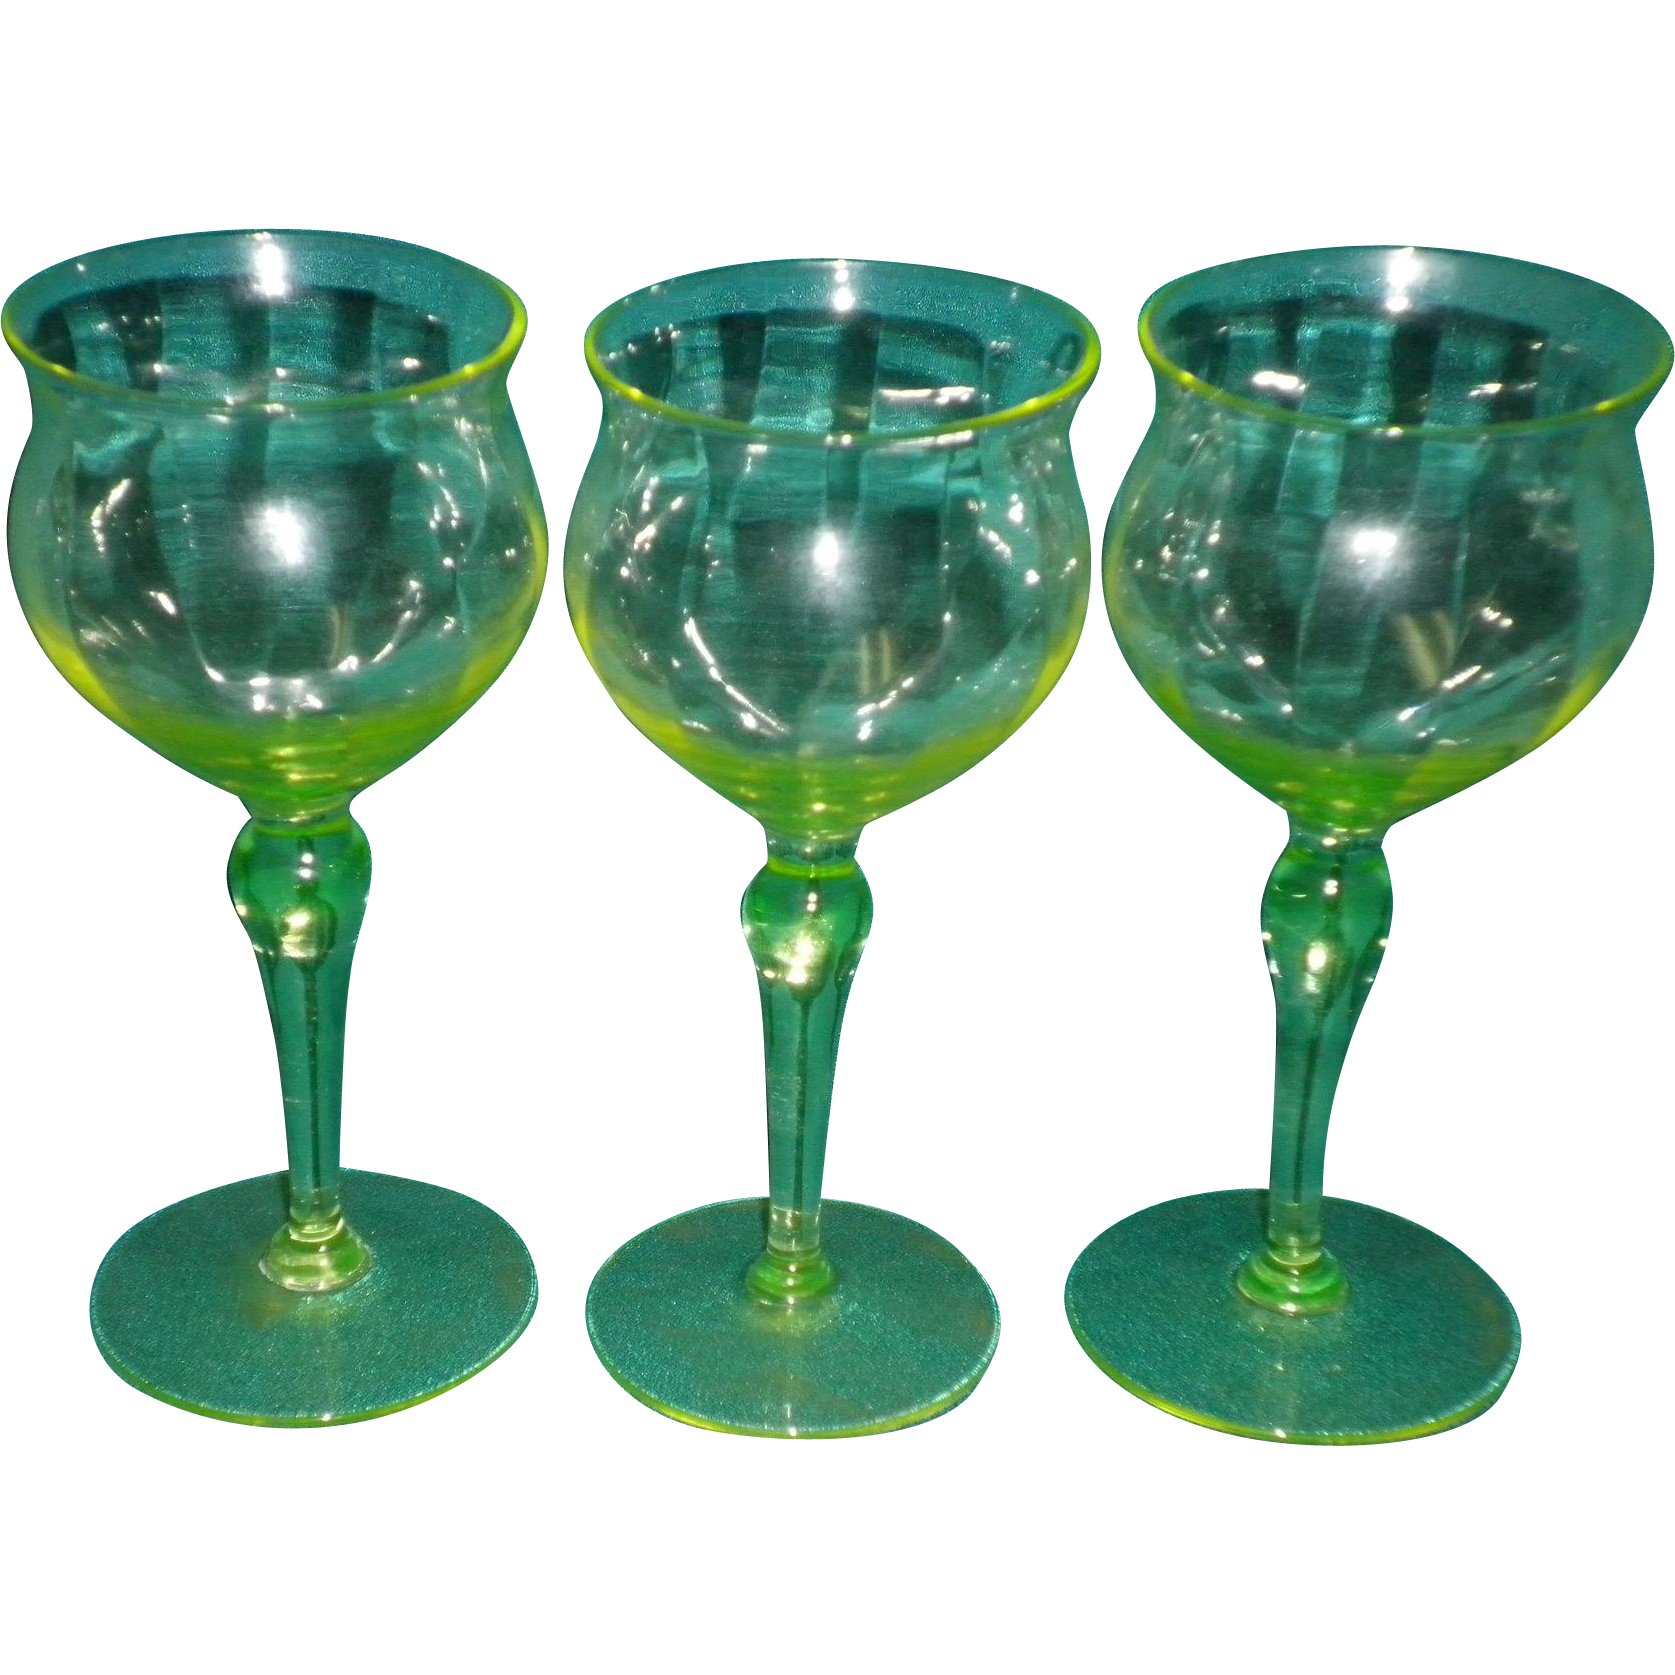 Set of 3 Paneled Vaseline Glass Cordial / Sherry Glasses